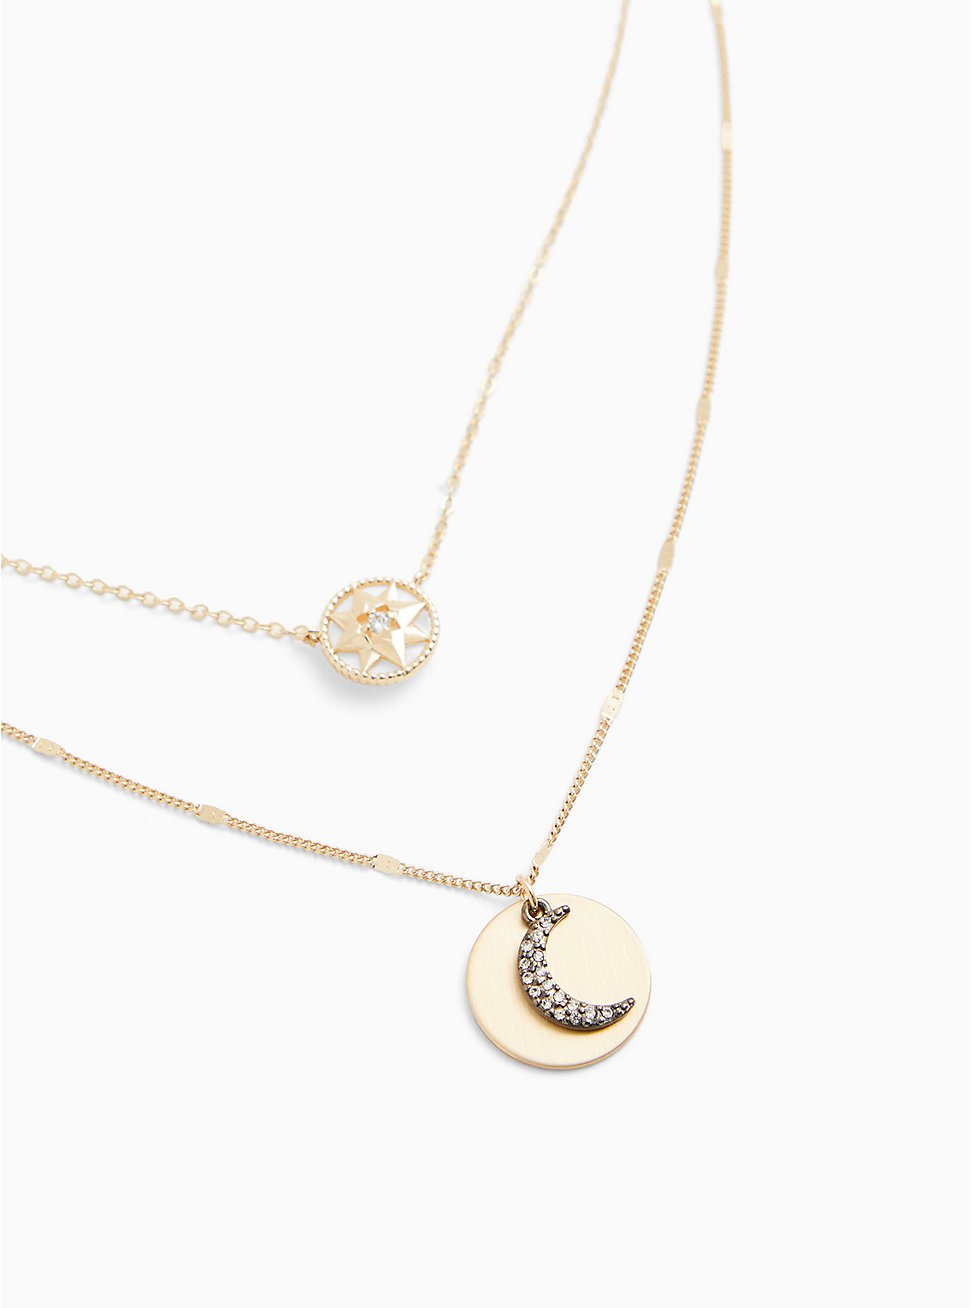 Gold-Tone Celestial Layered Necklace , , hi-res